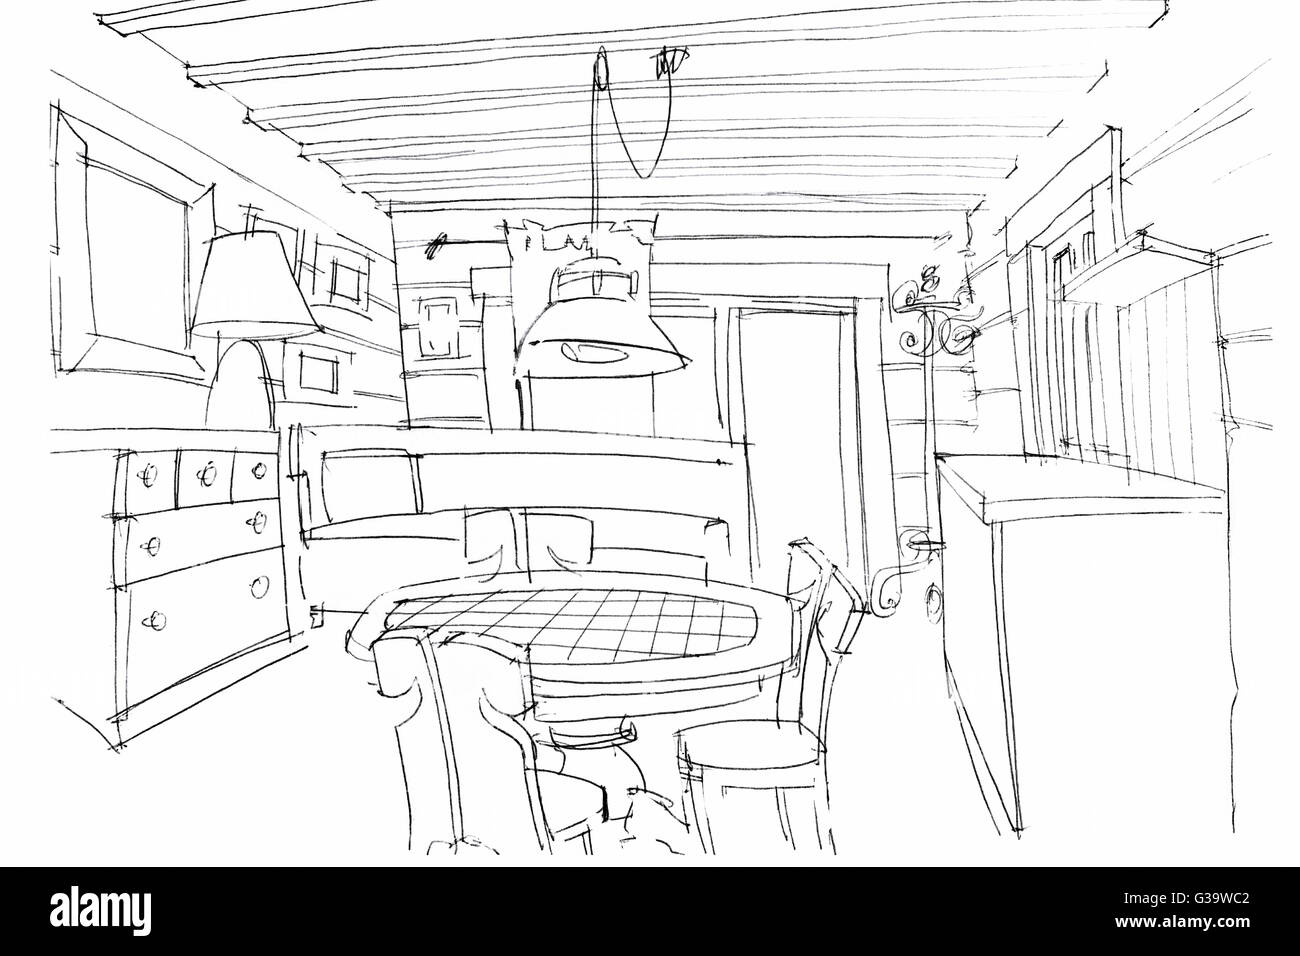 Designers hand drawing interior perspective of a kitchen in black and white